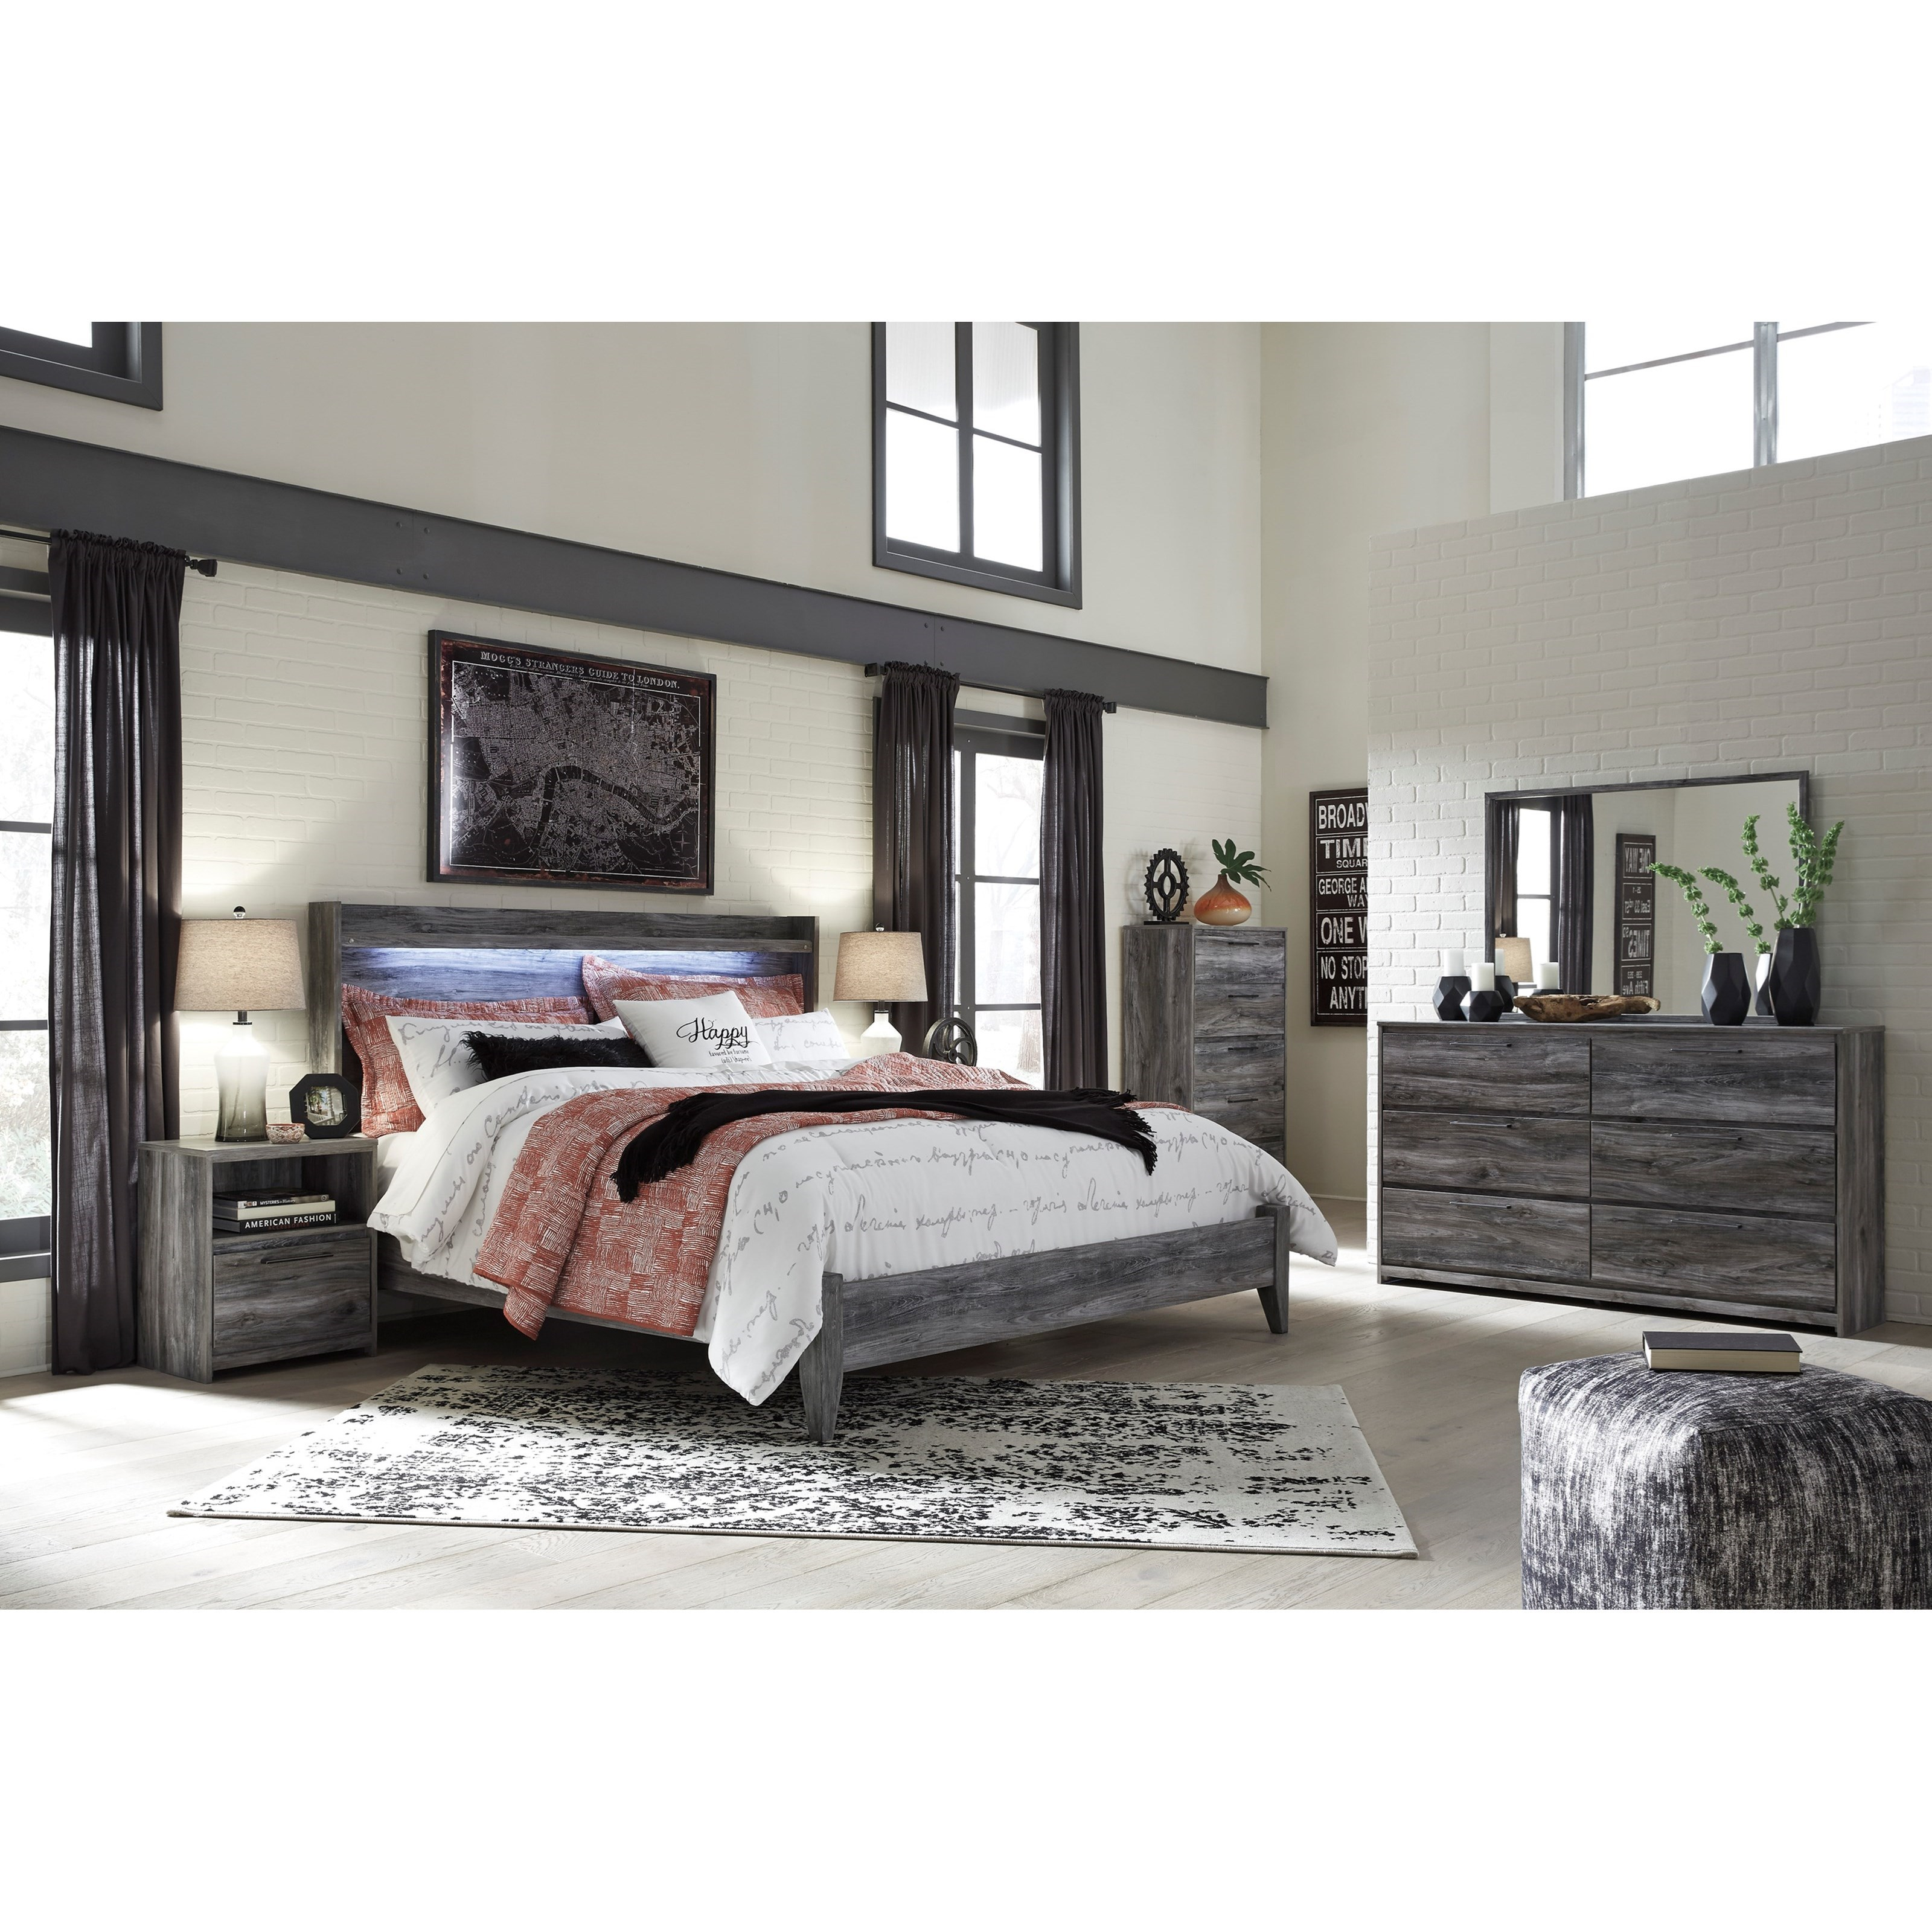 Baystorm King Bedroom Group by Signature Design by Ashley at Sparks HomeStore